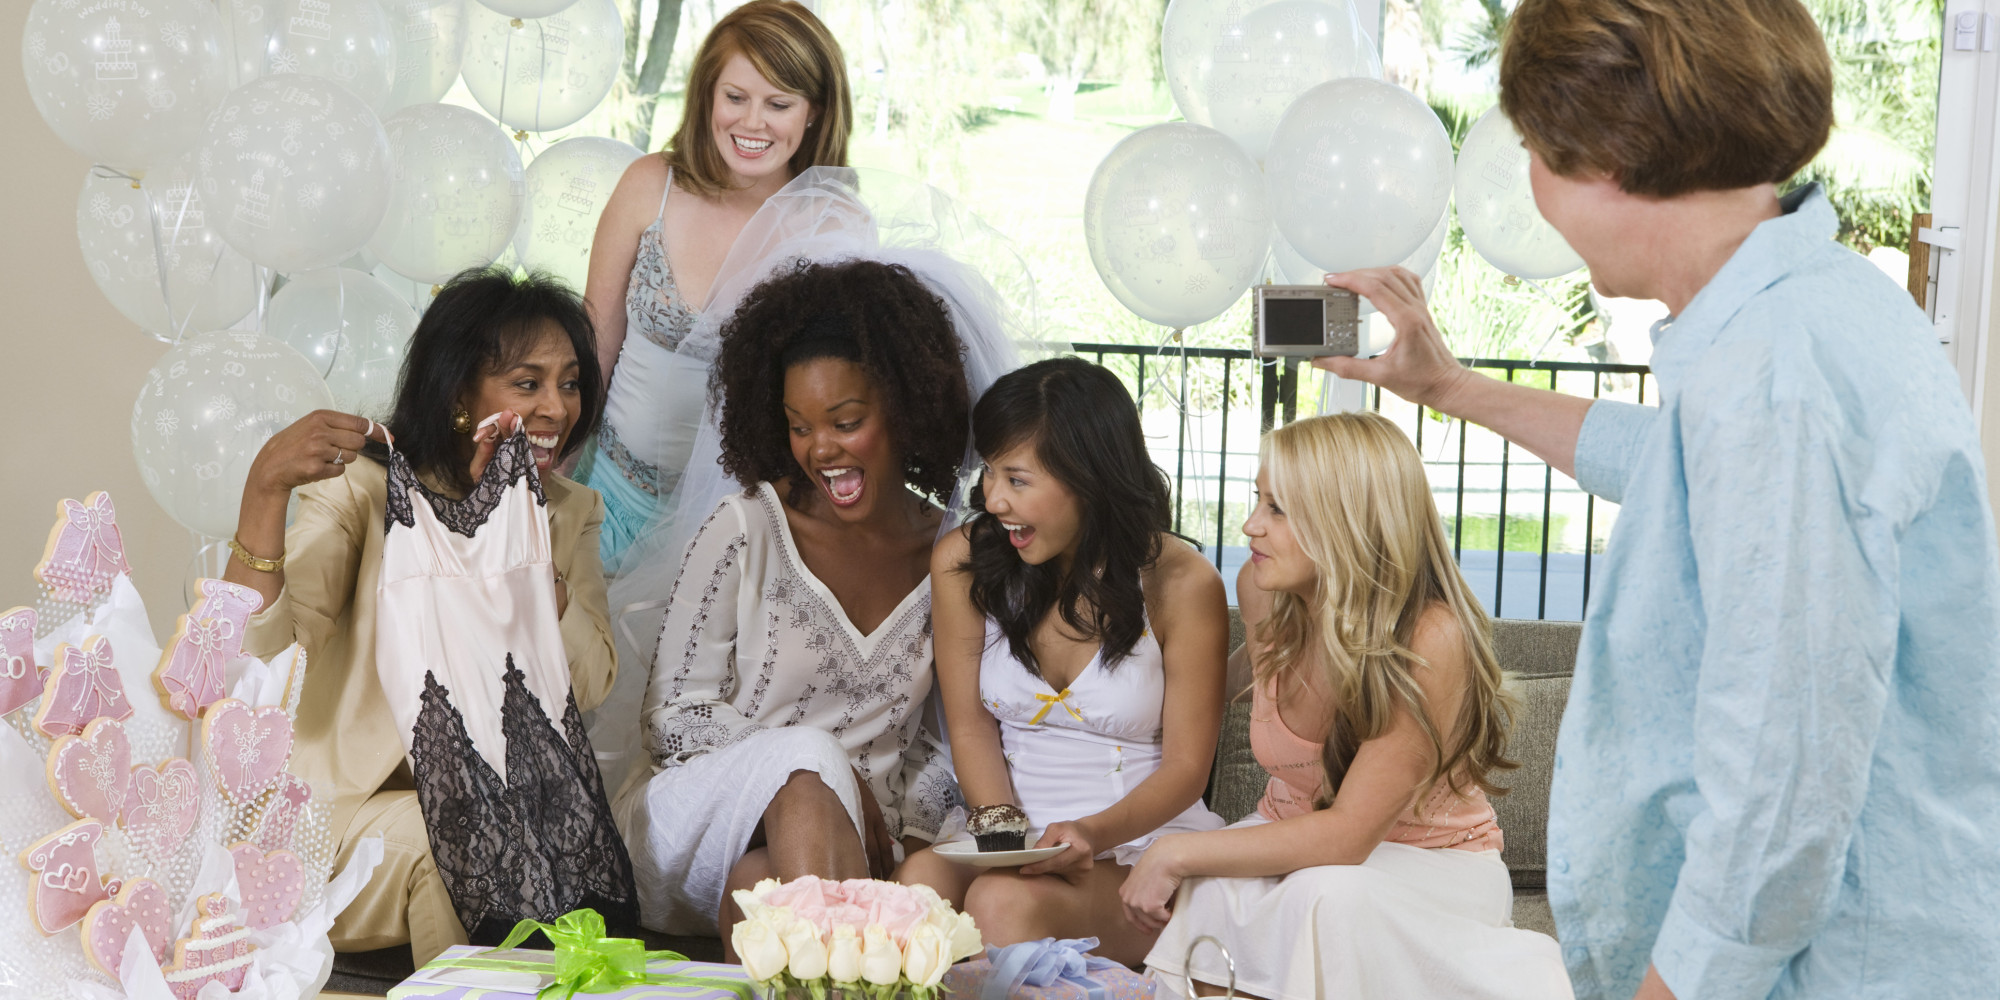 Wedding Gift For Couple Living With Parents : Who Should Be Invited to a Bridal Shower? HuffPost